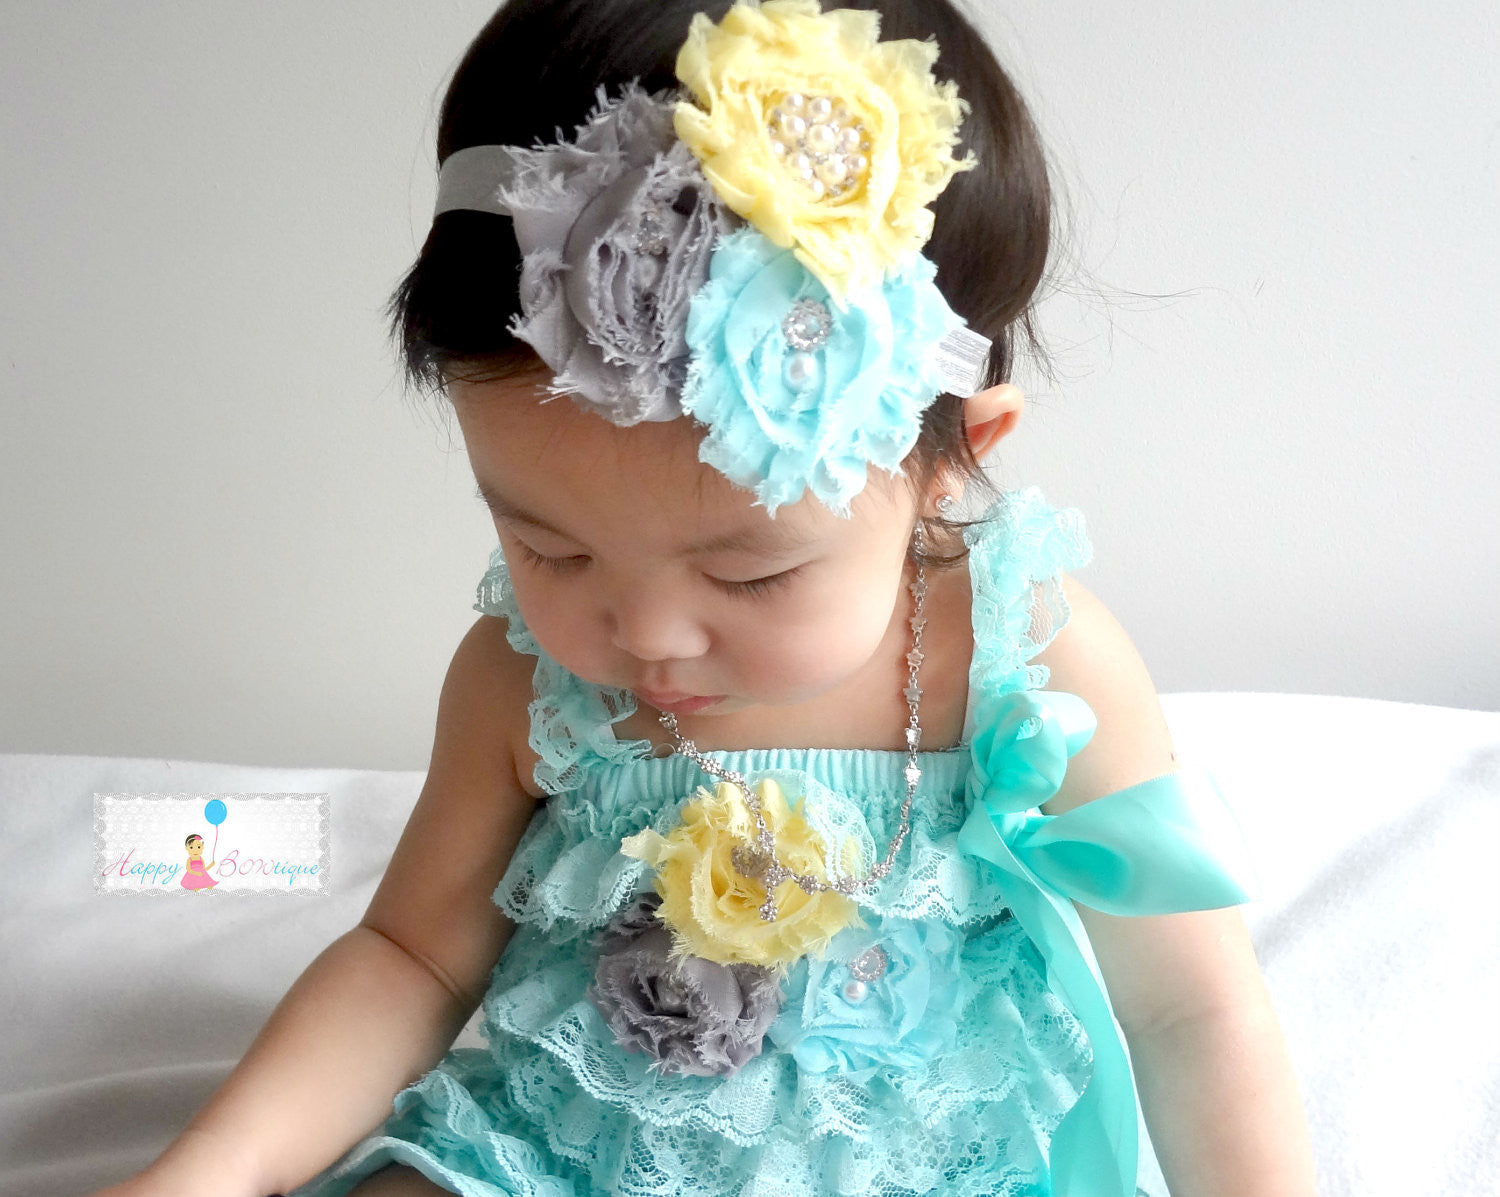 Light Aqua Lace Petti Romper - Happy BOWtique - children's clothing, Baby Girl clothing